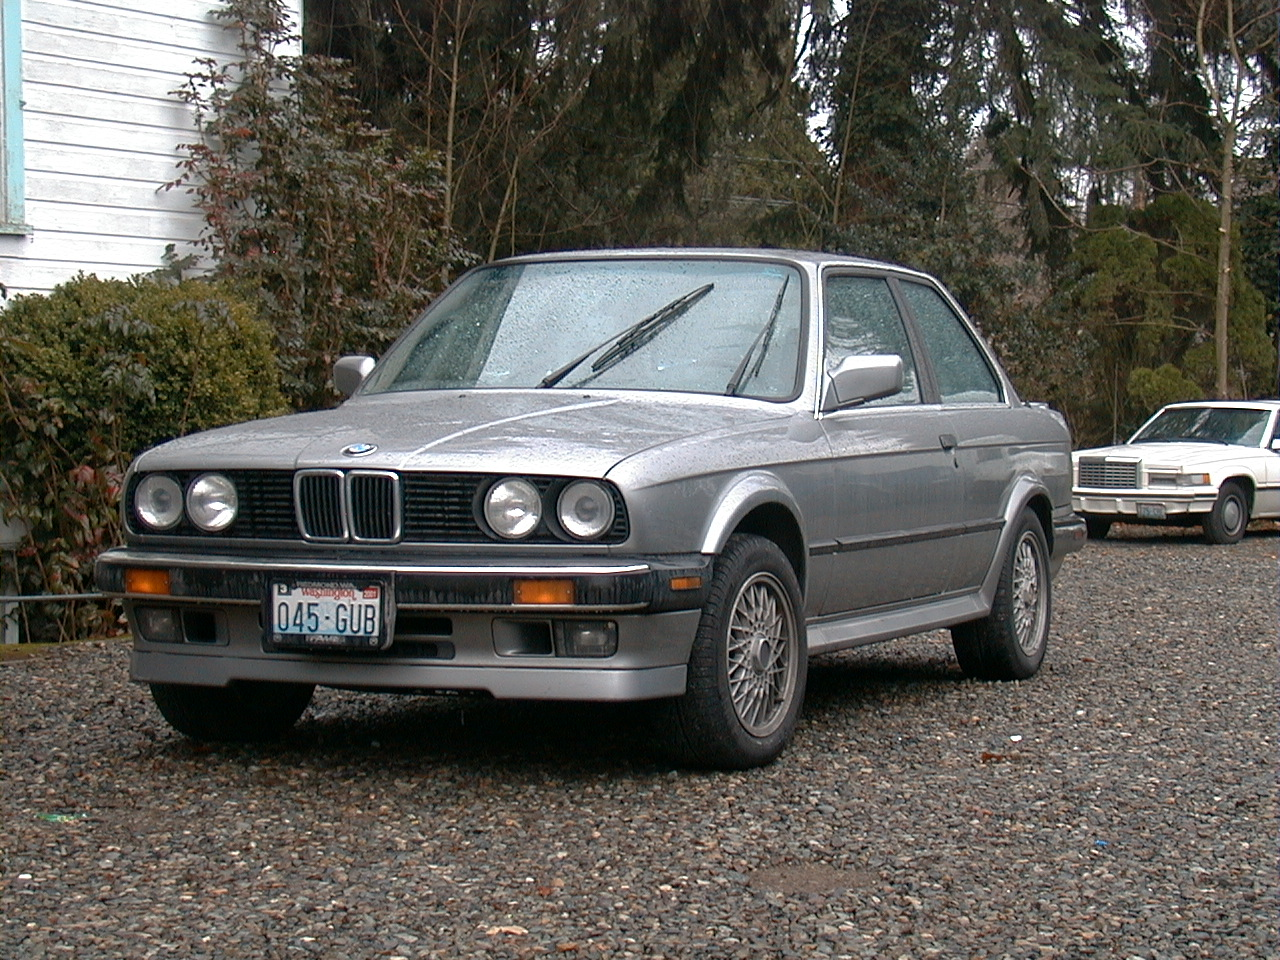 BMW 3 series 325ix 1988 photo - 8